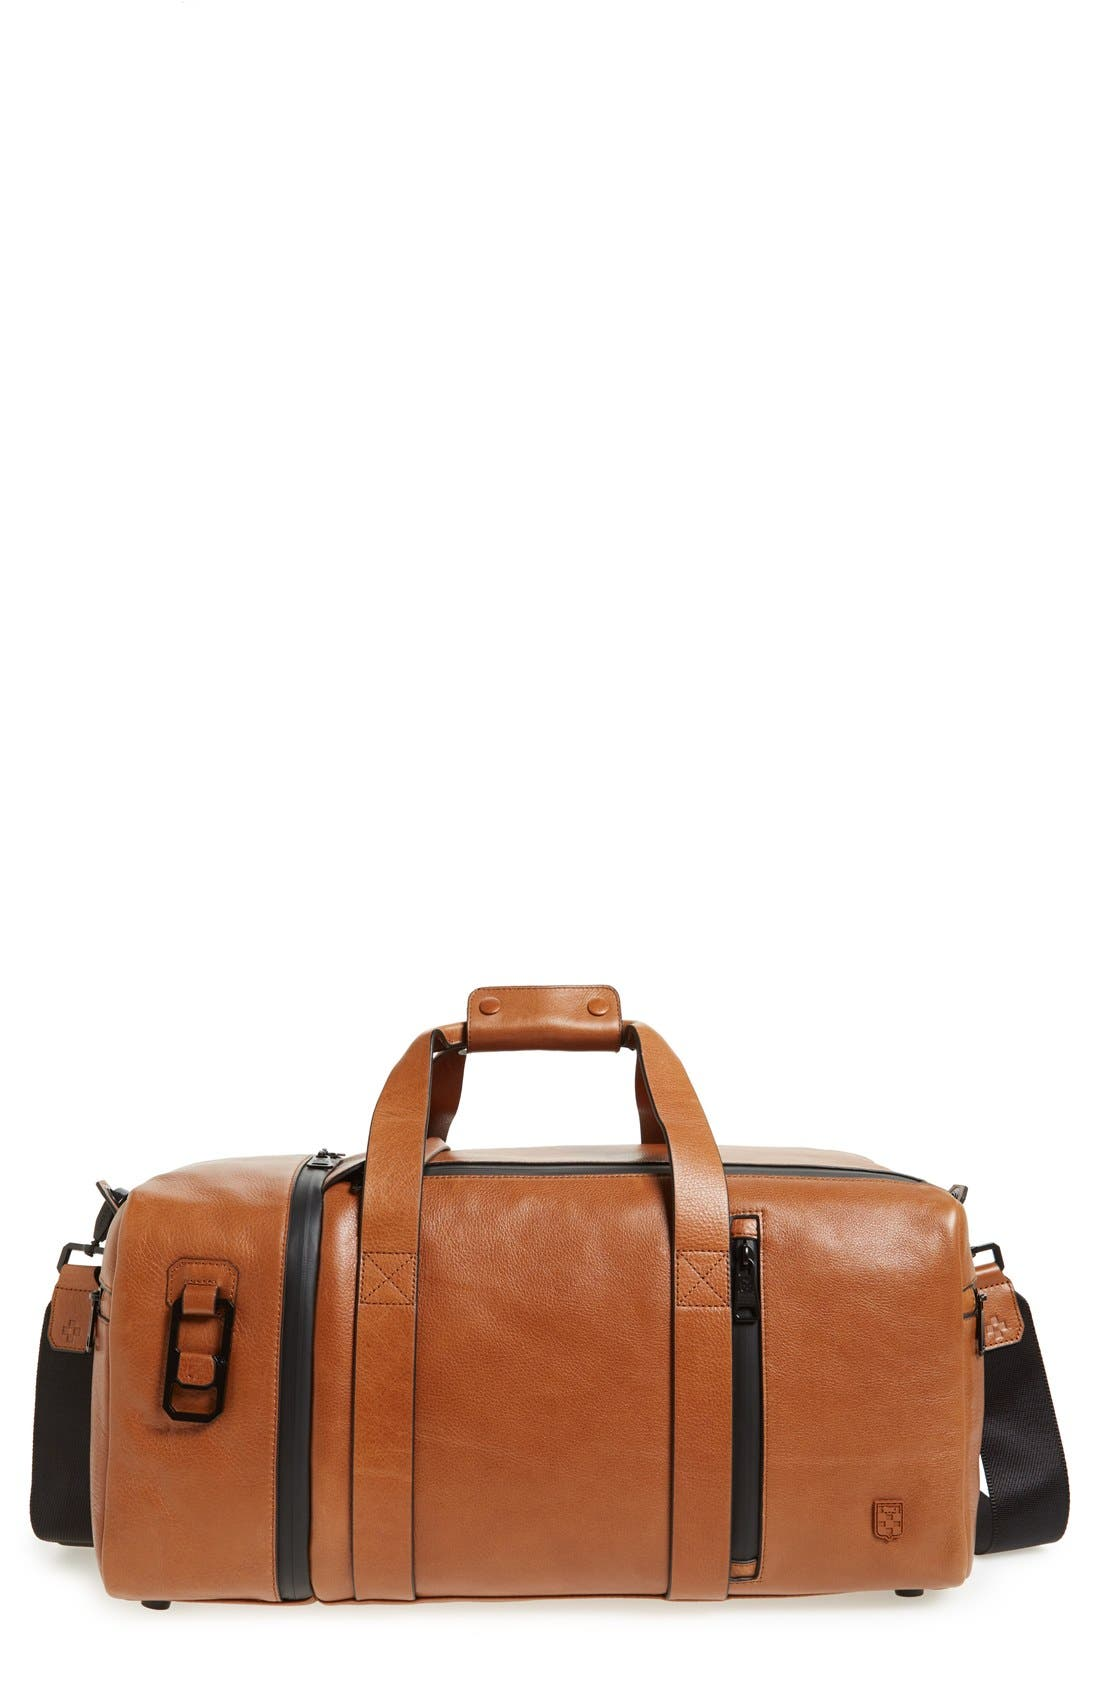 Vince Camuto 'Mestr' Leather & Suede Duffel Bag